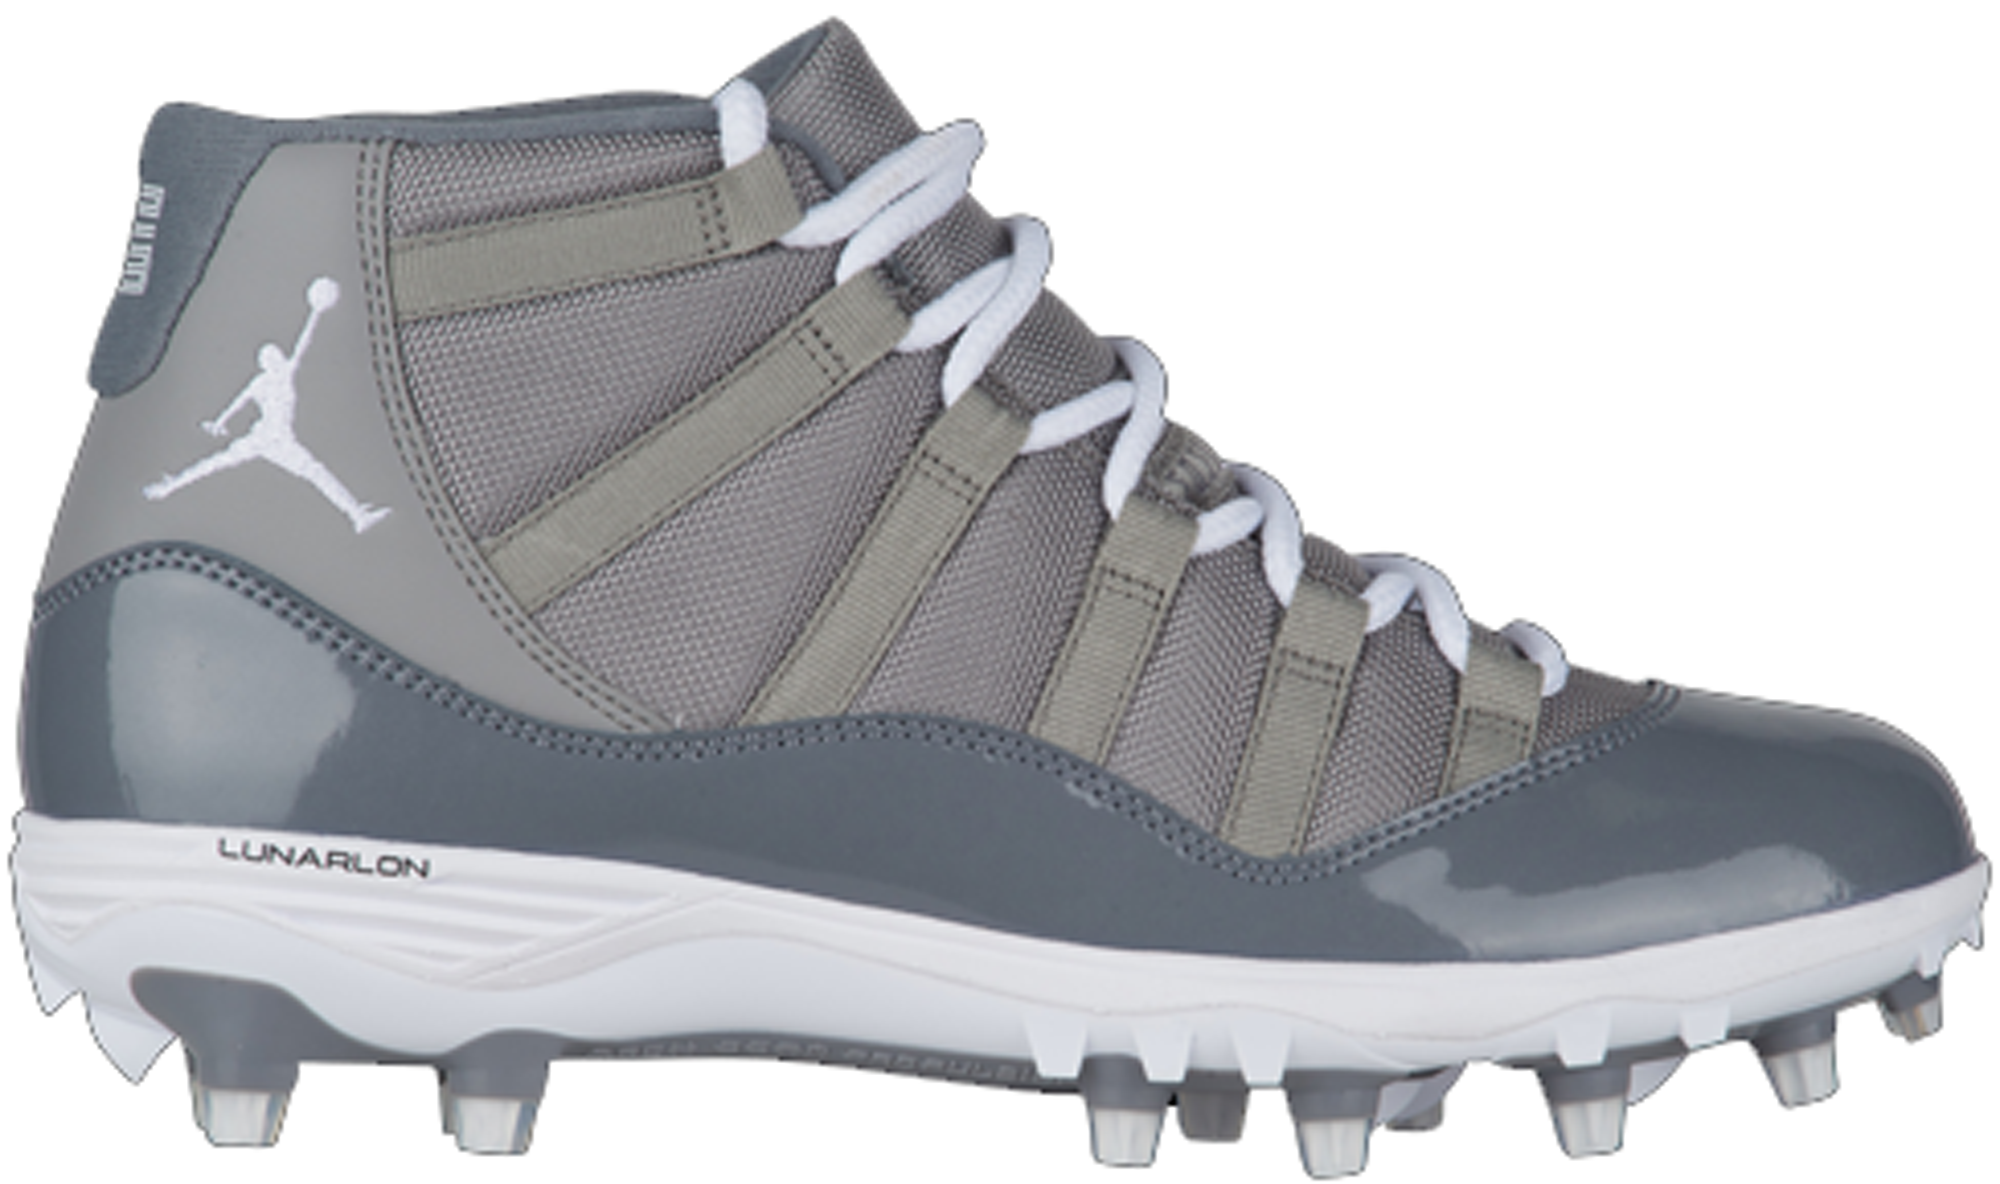 567dec7483a18 Air Jordan 11 Cool Grey Cleat